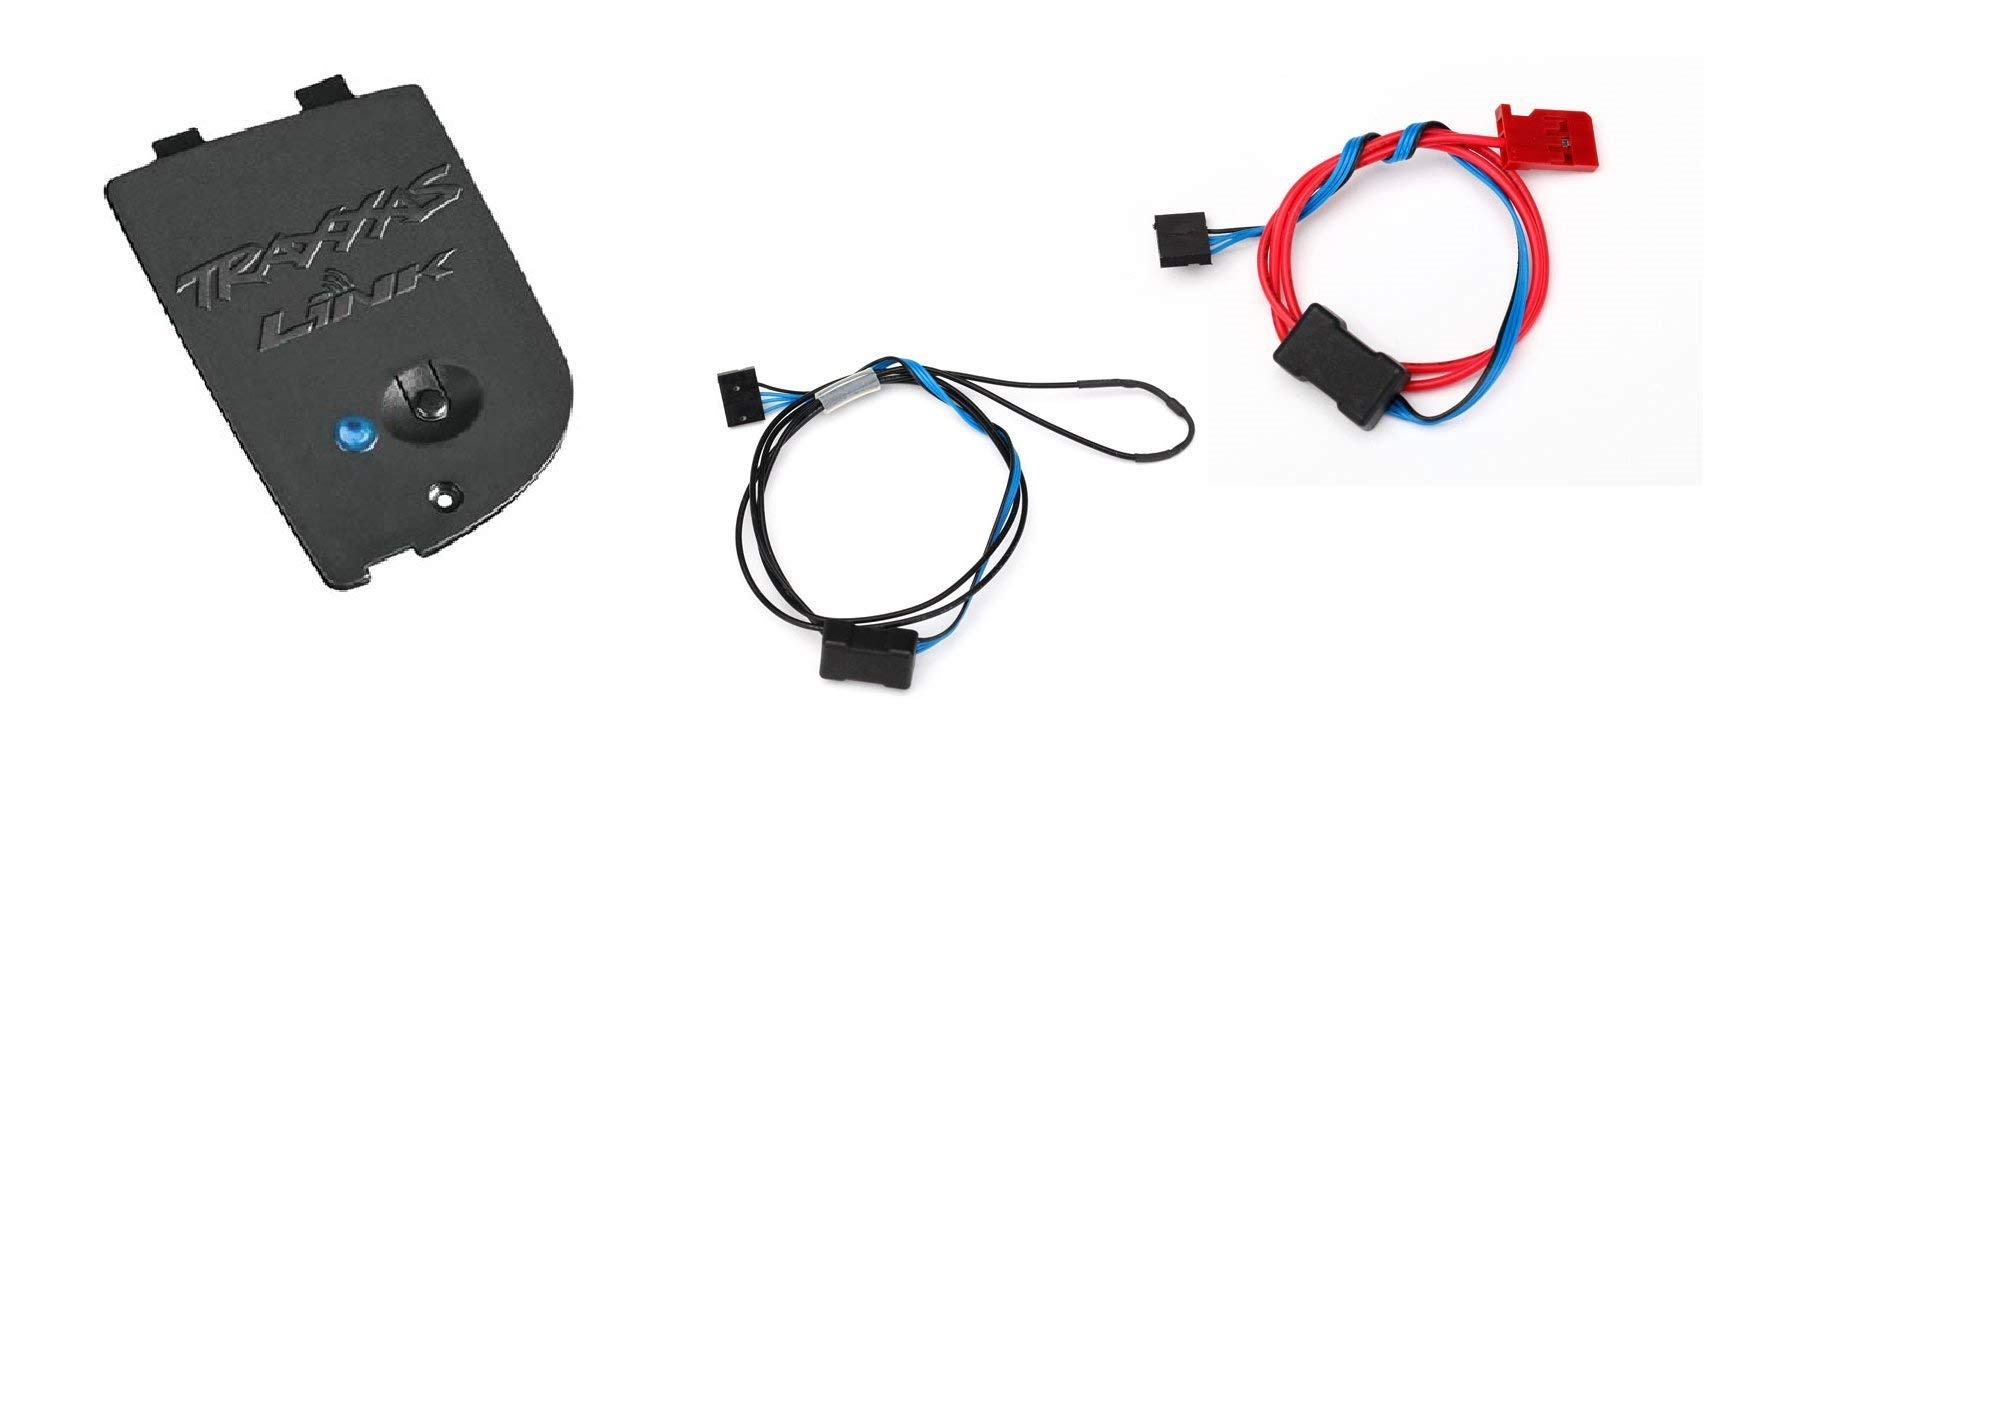 Traxxas Blue Tooth Wireless Module 6511, with Temperature Sensor 6526, and Voltage Sensor 6527 for All Vehicles